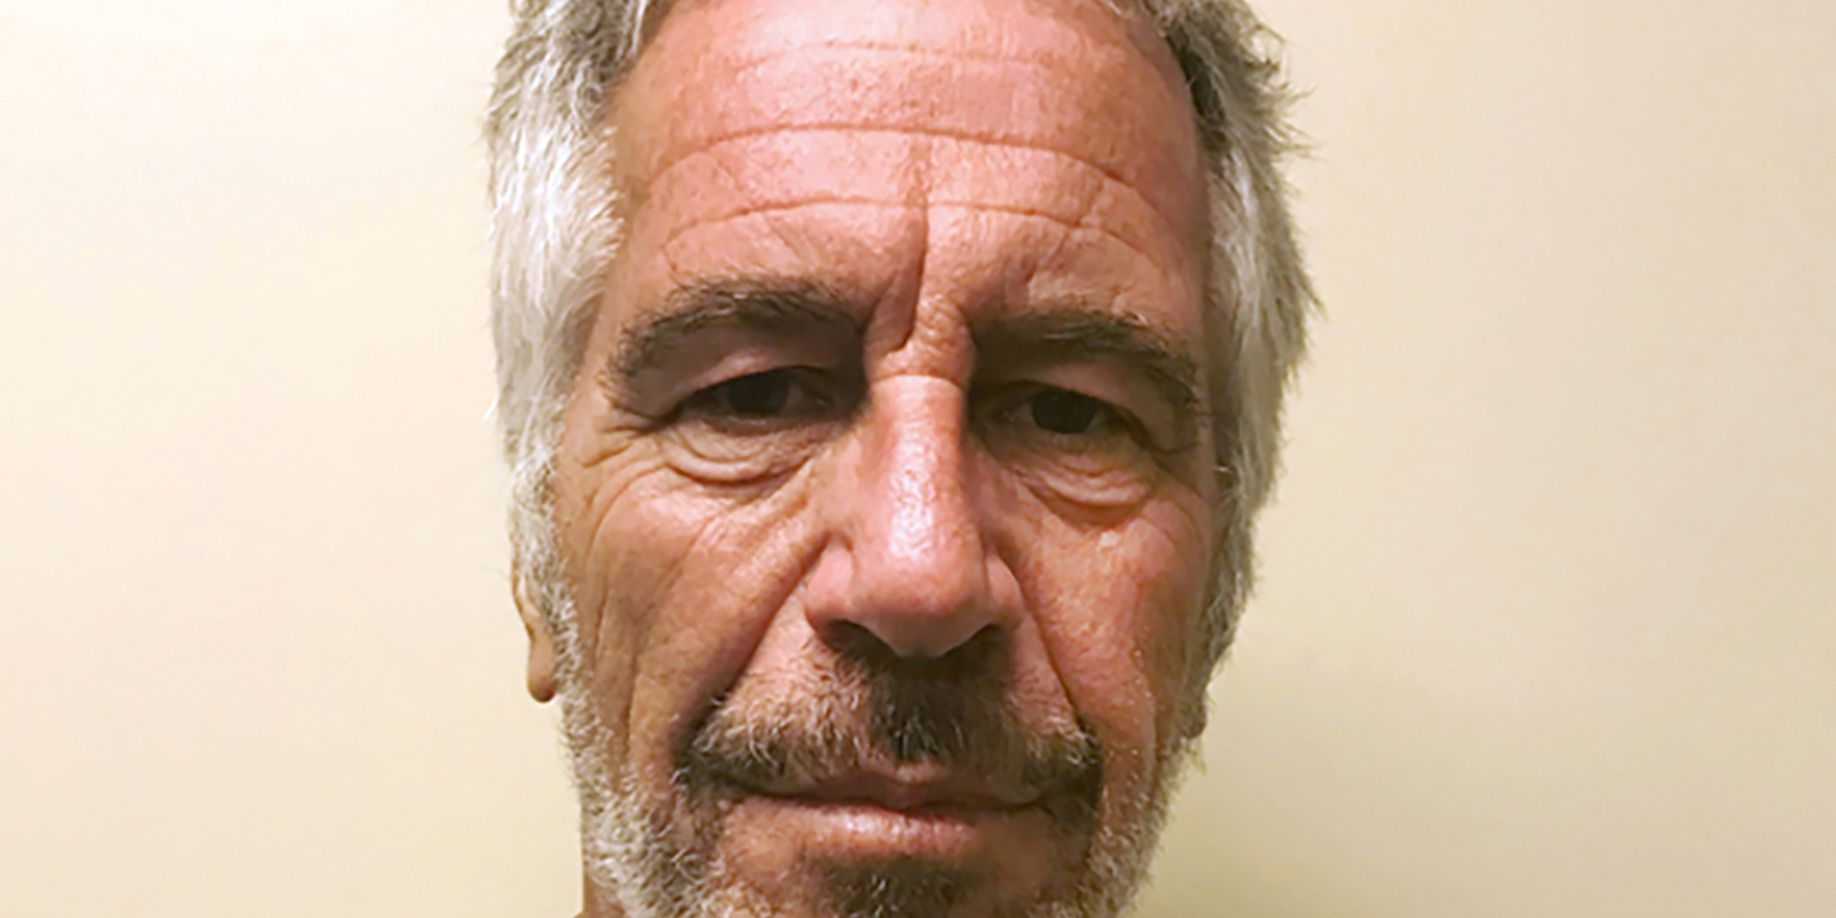 AP sources: Epstein jail guards had been offered plea deal